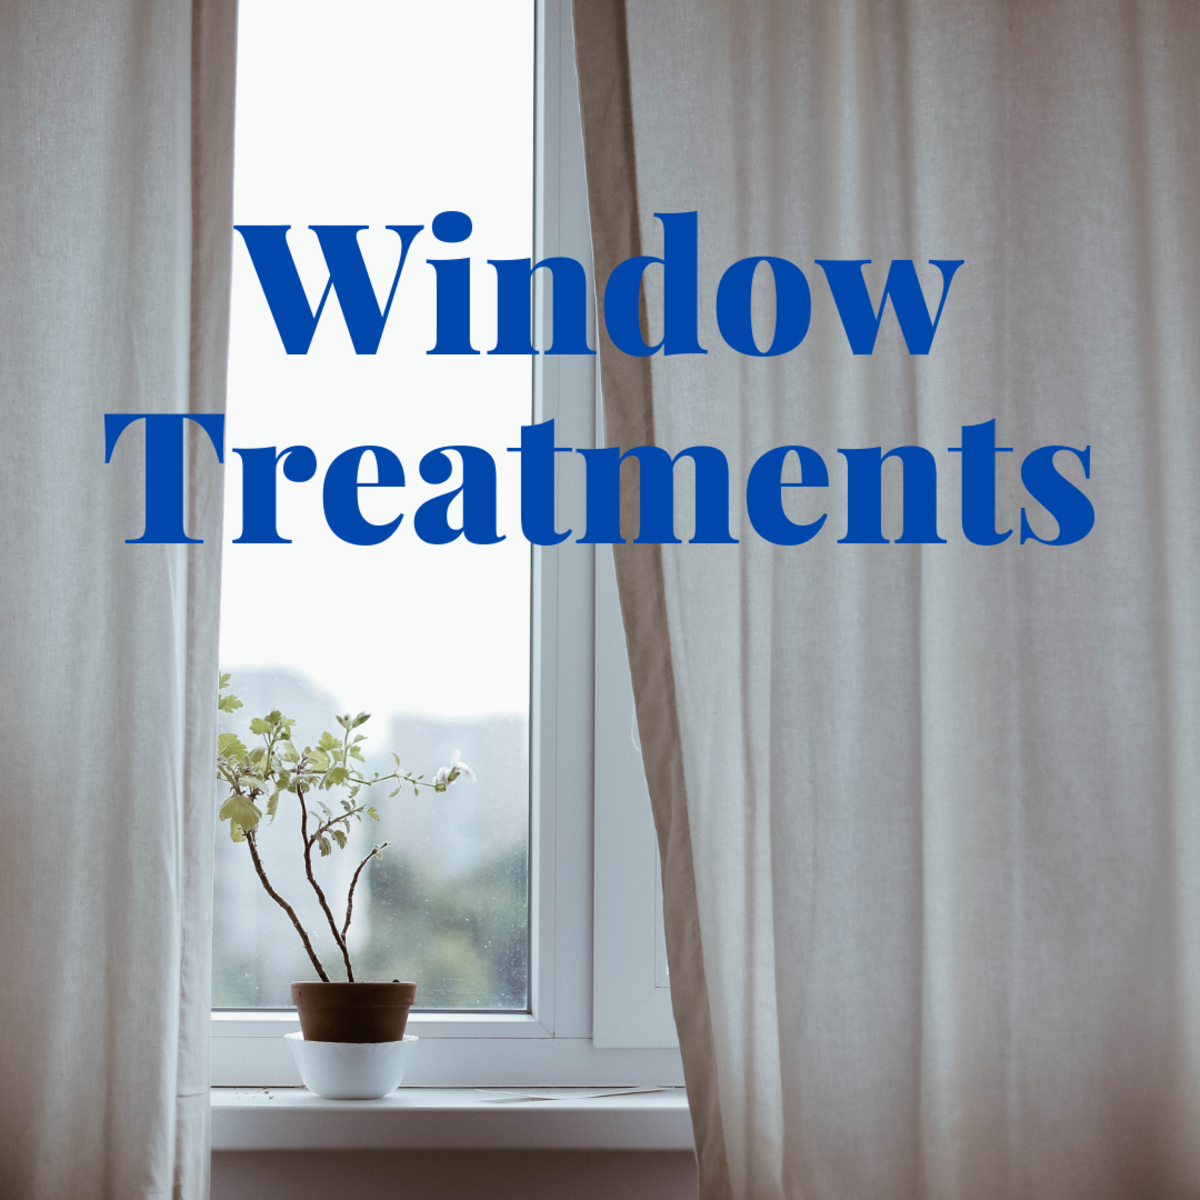 Window Treatments Explained